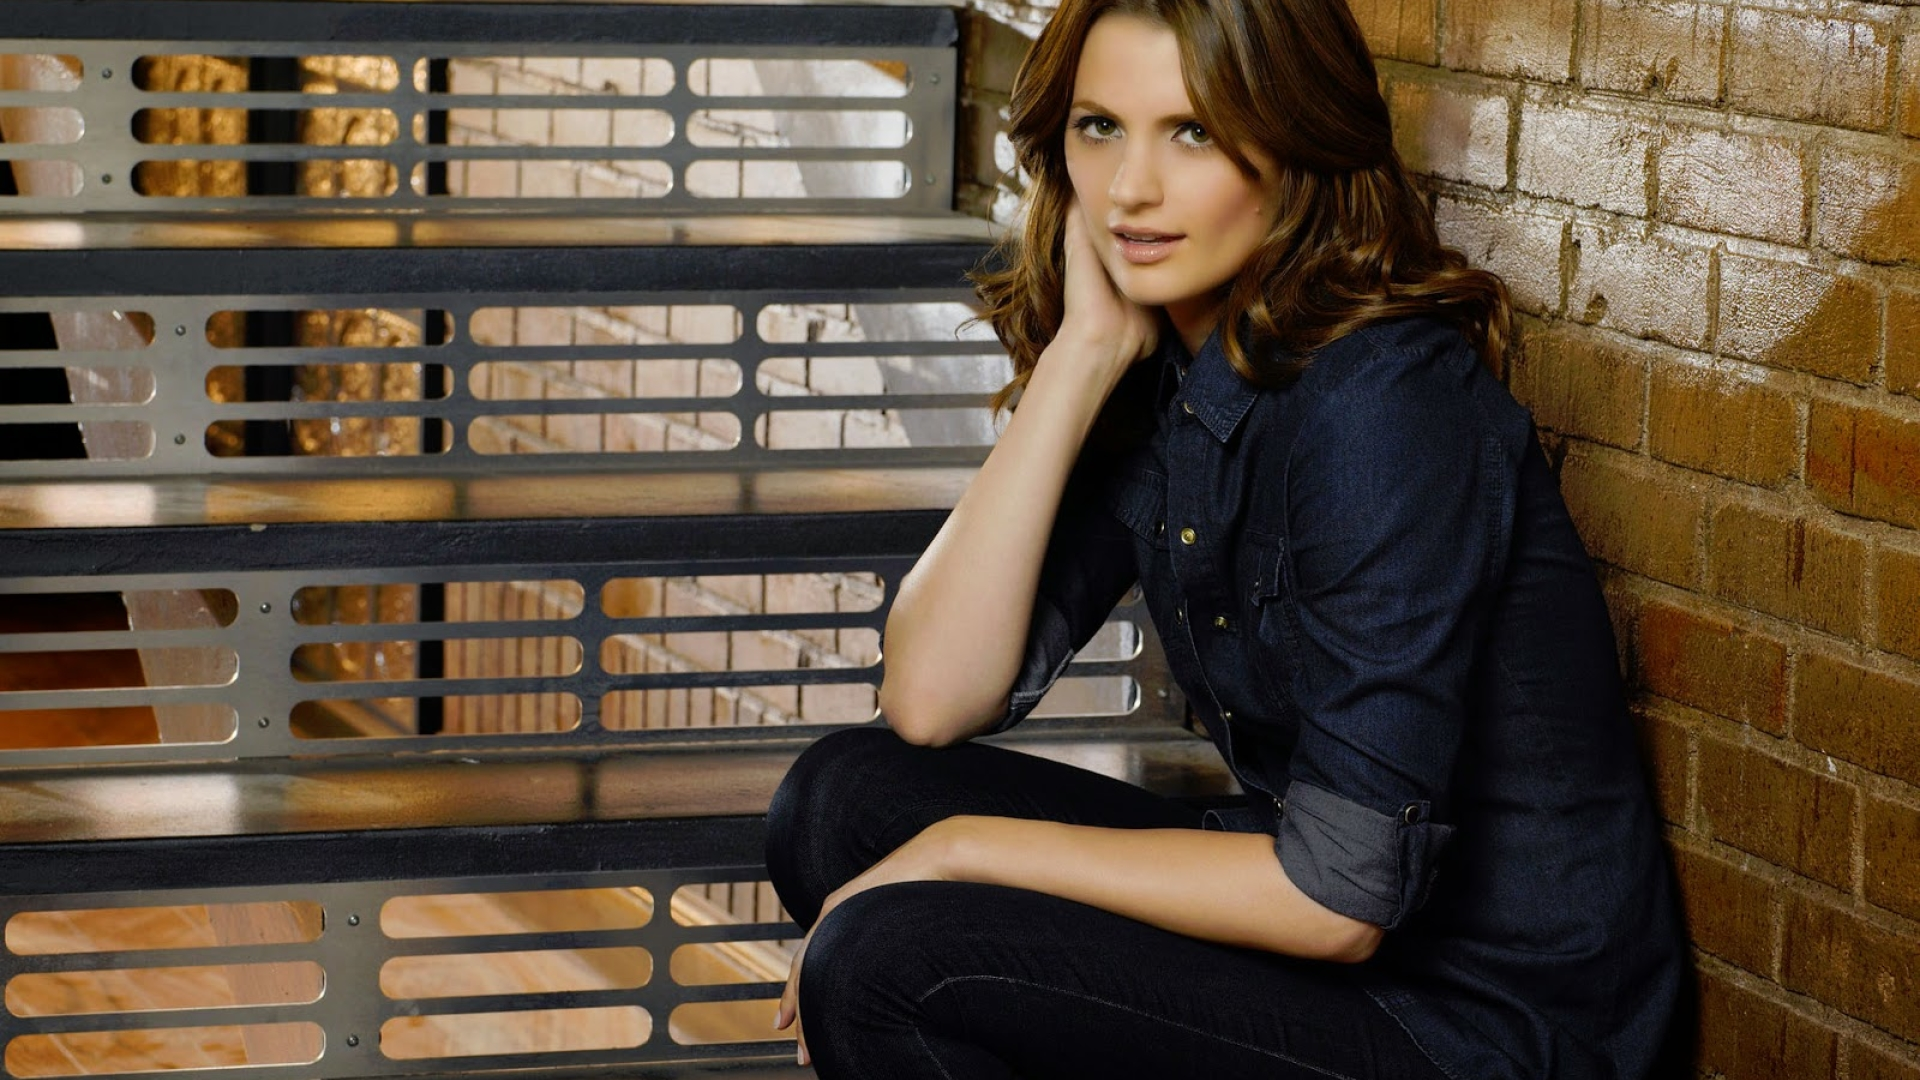 1920x1080 Stana Katic Photo Shoot 1080p Laptop Full Hd Wallpaper Hd Celebrities 4k Wallpapers Images Photos And Background